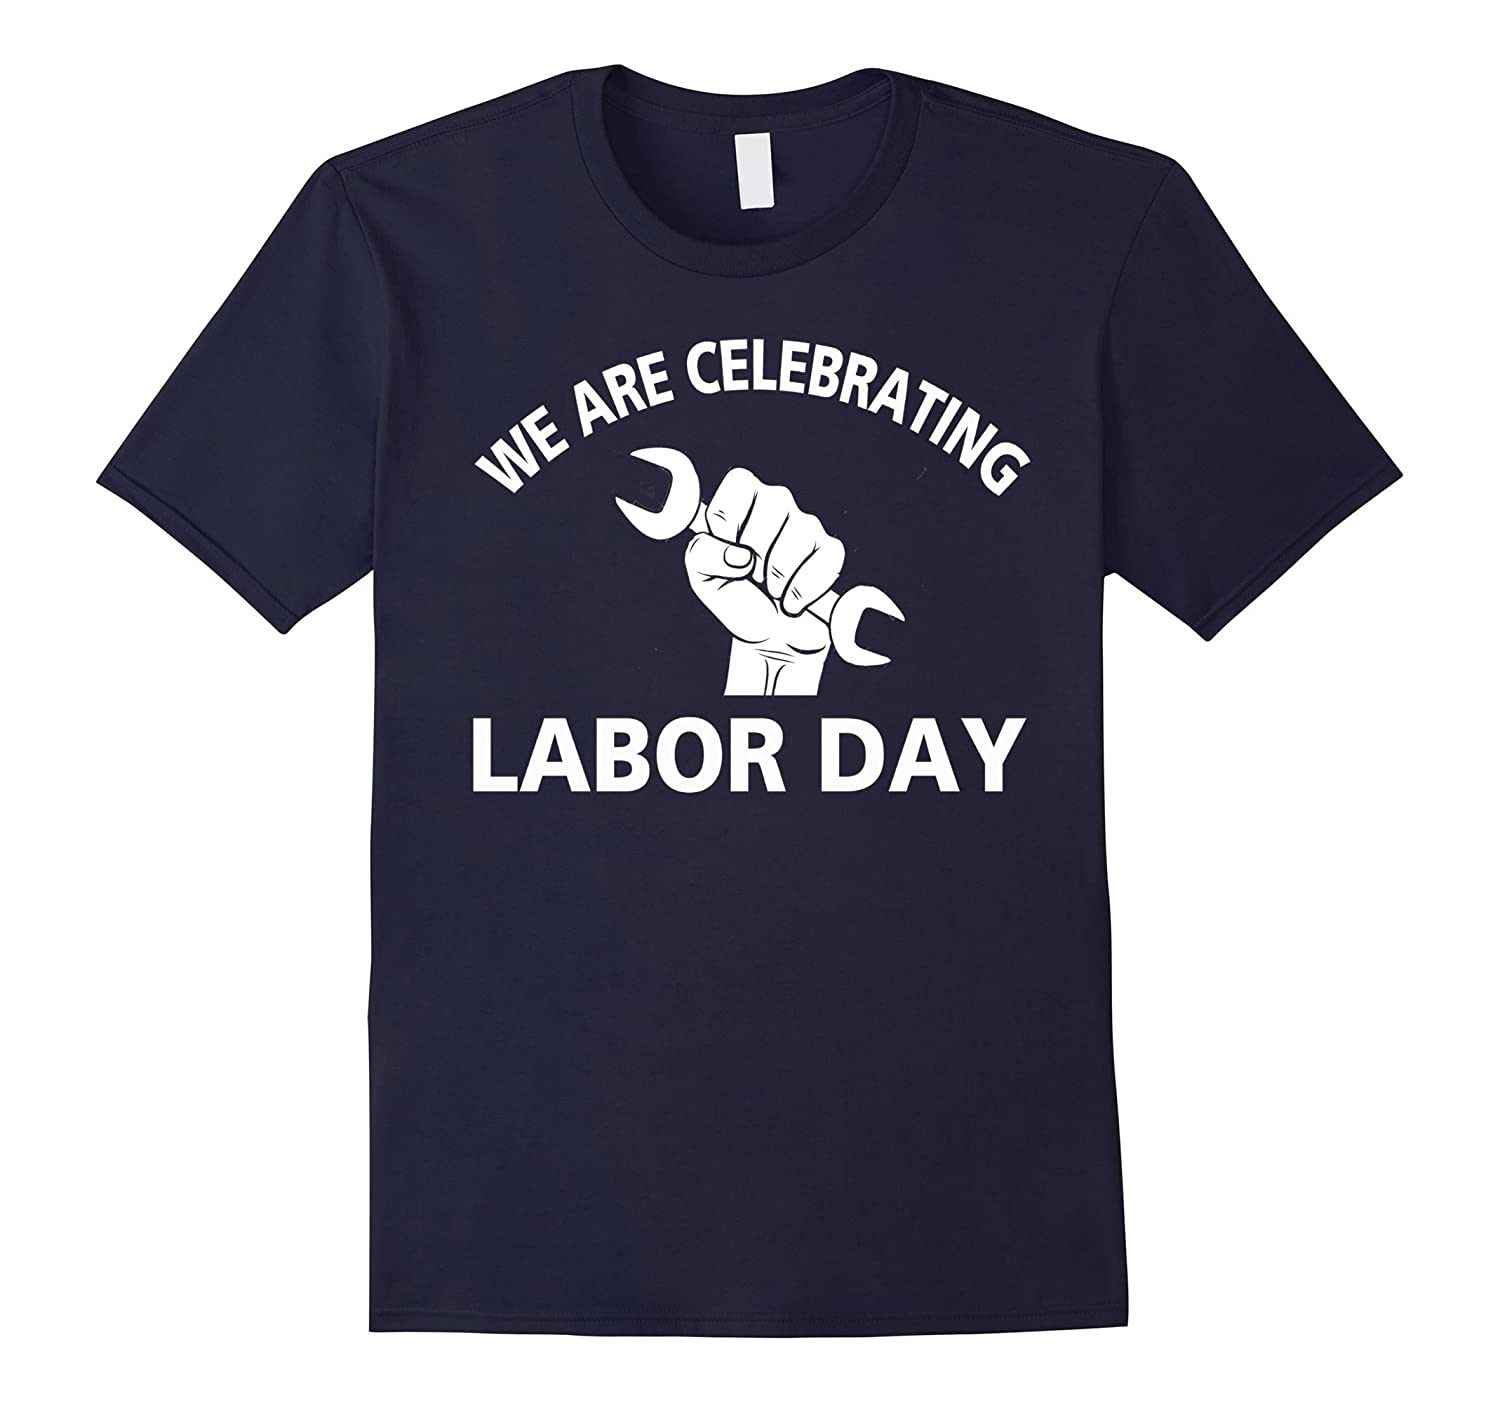 We Are Celebrating Labor Day, 4th of September 2017 T-Shirt-BN